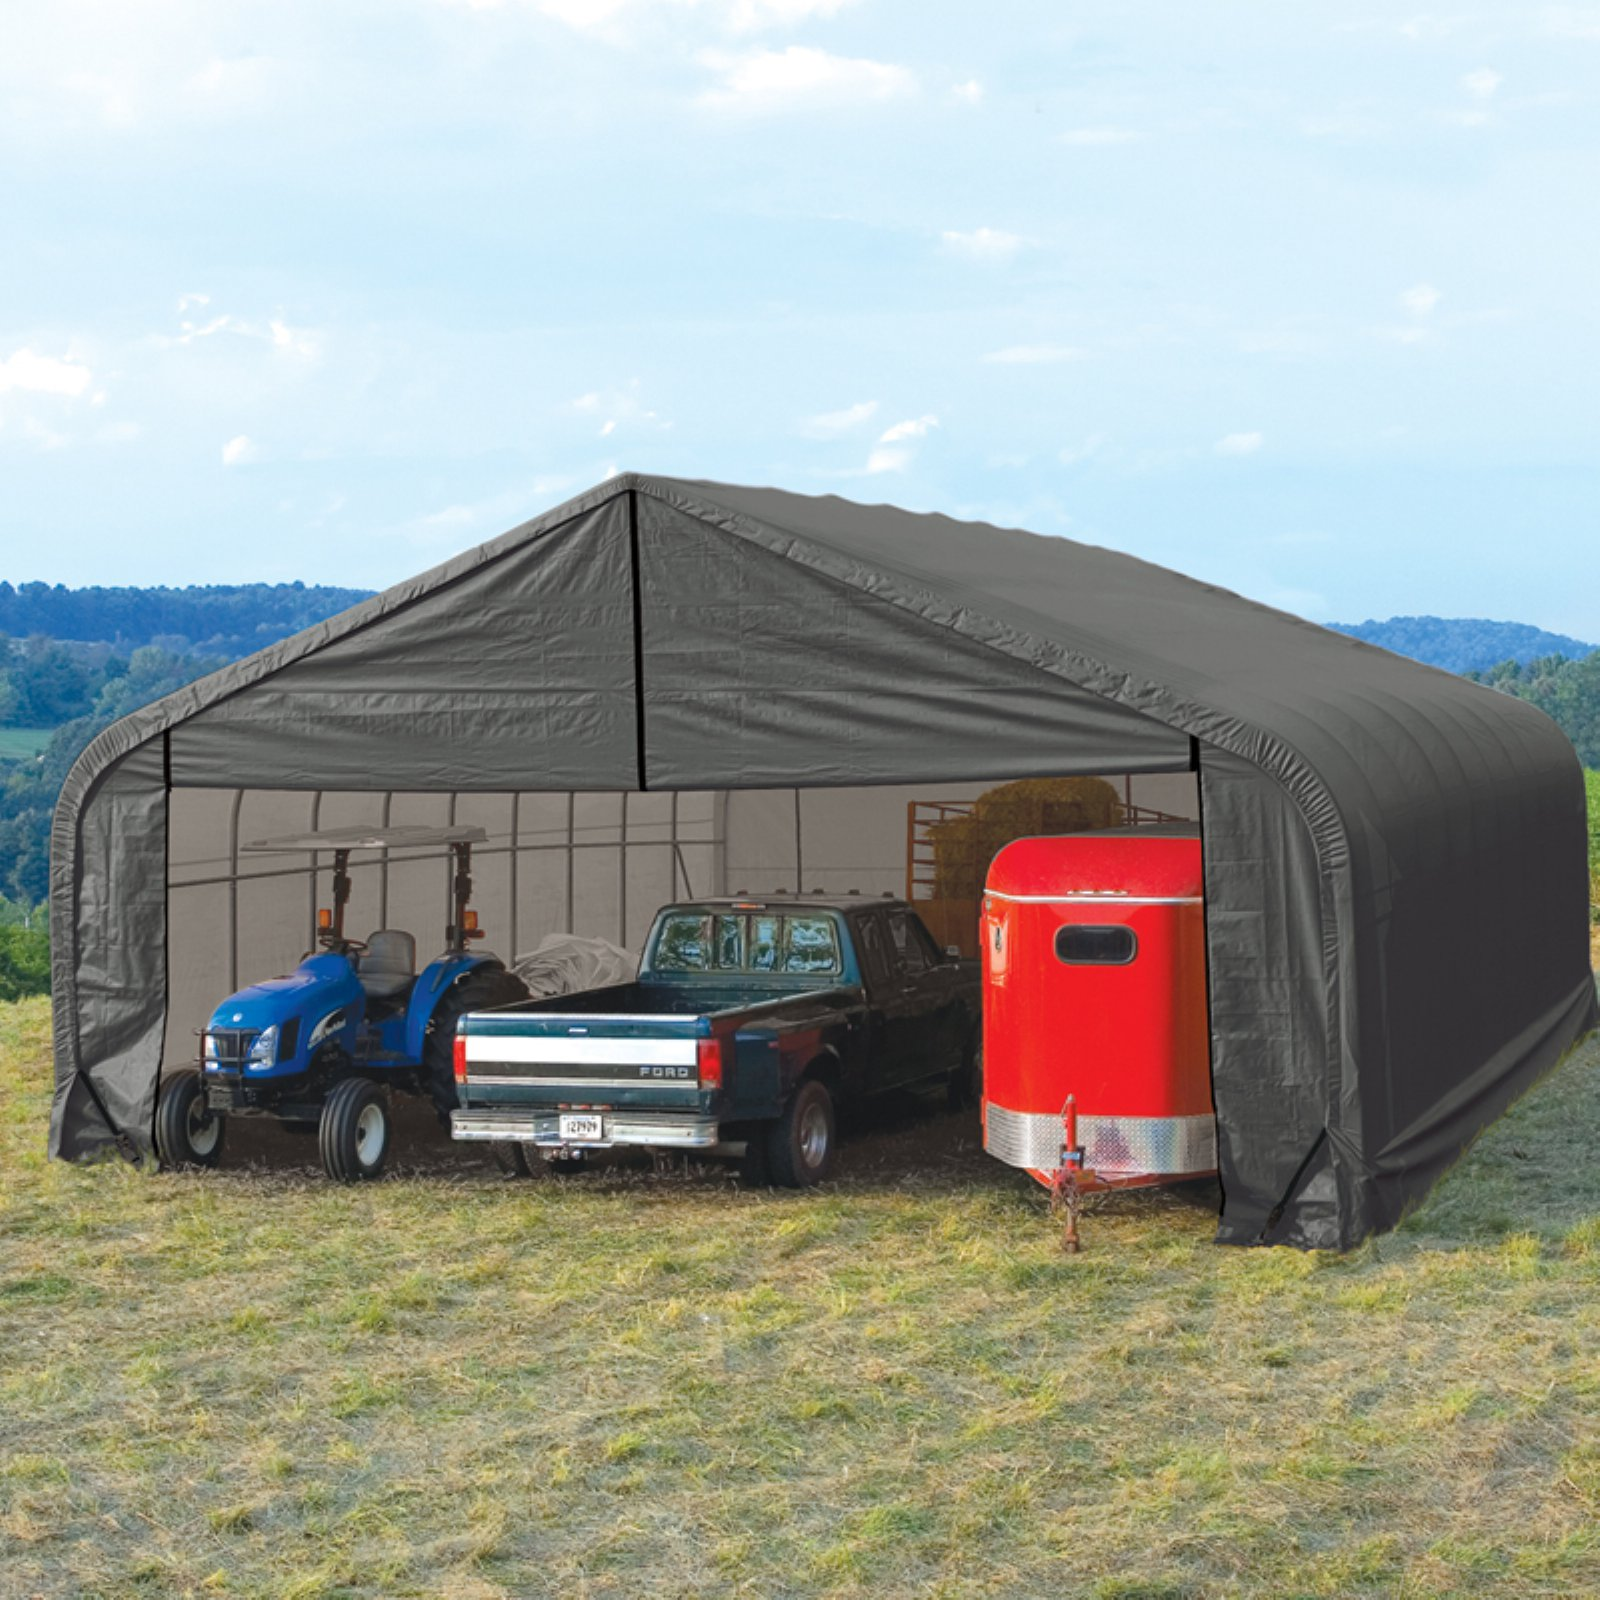 Shelterlogic 28' x 24' x 16' Peak Style Shelter, Green